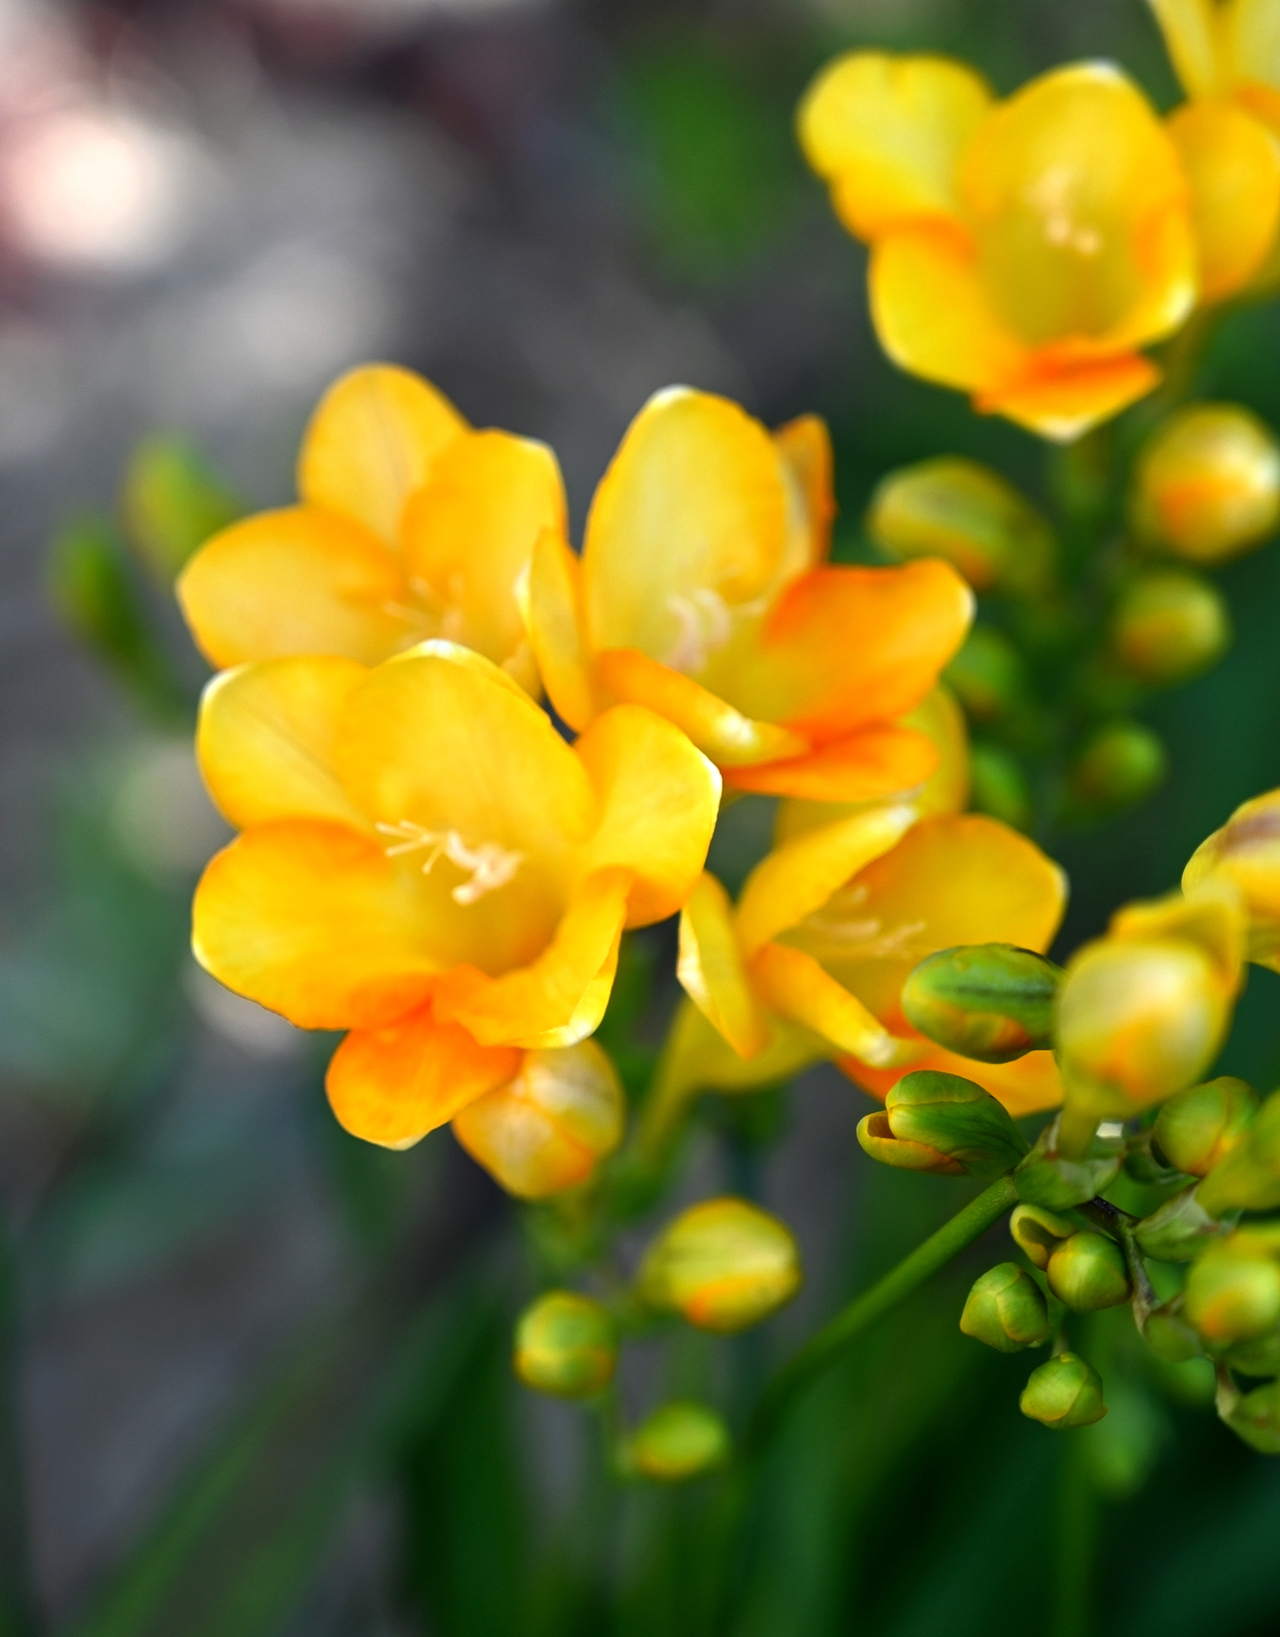 Freesia bell shaped flowers